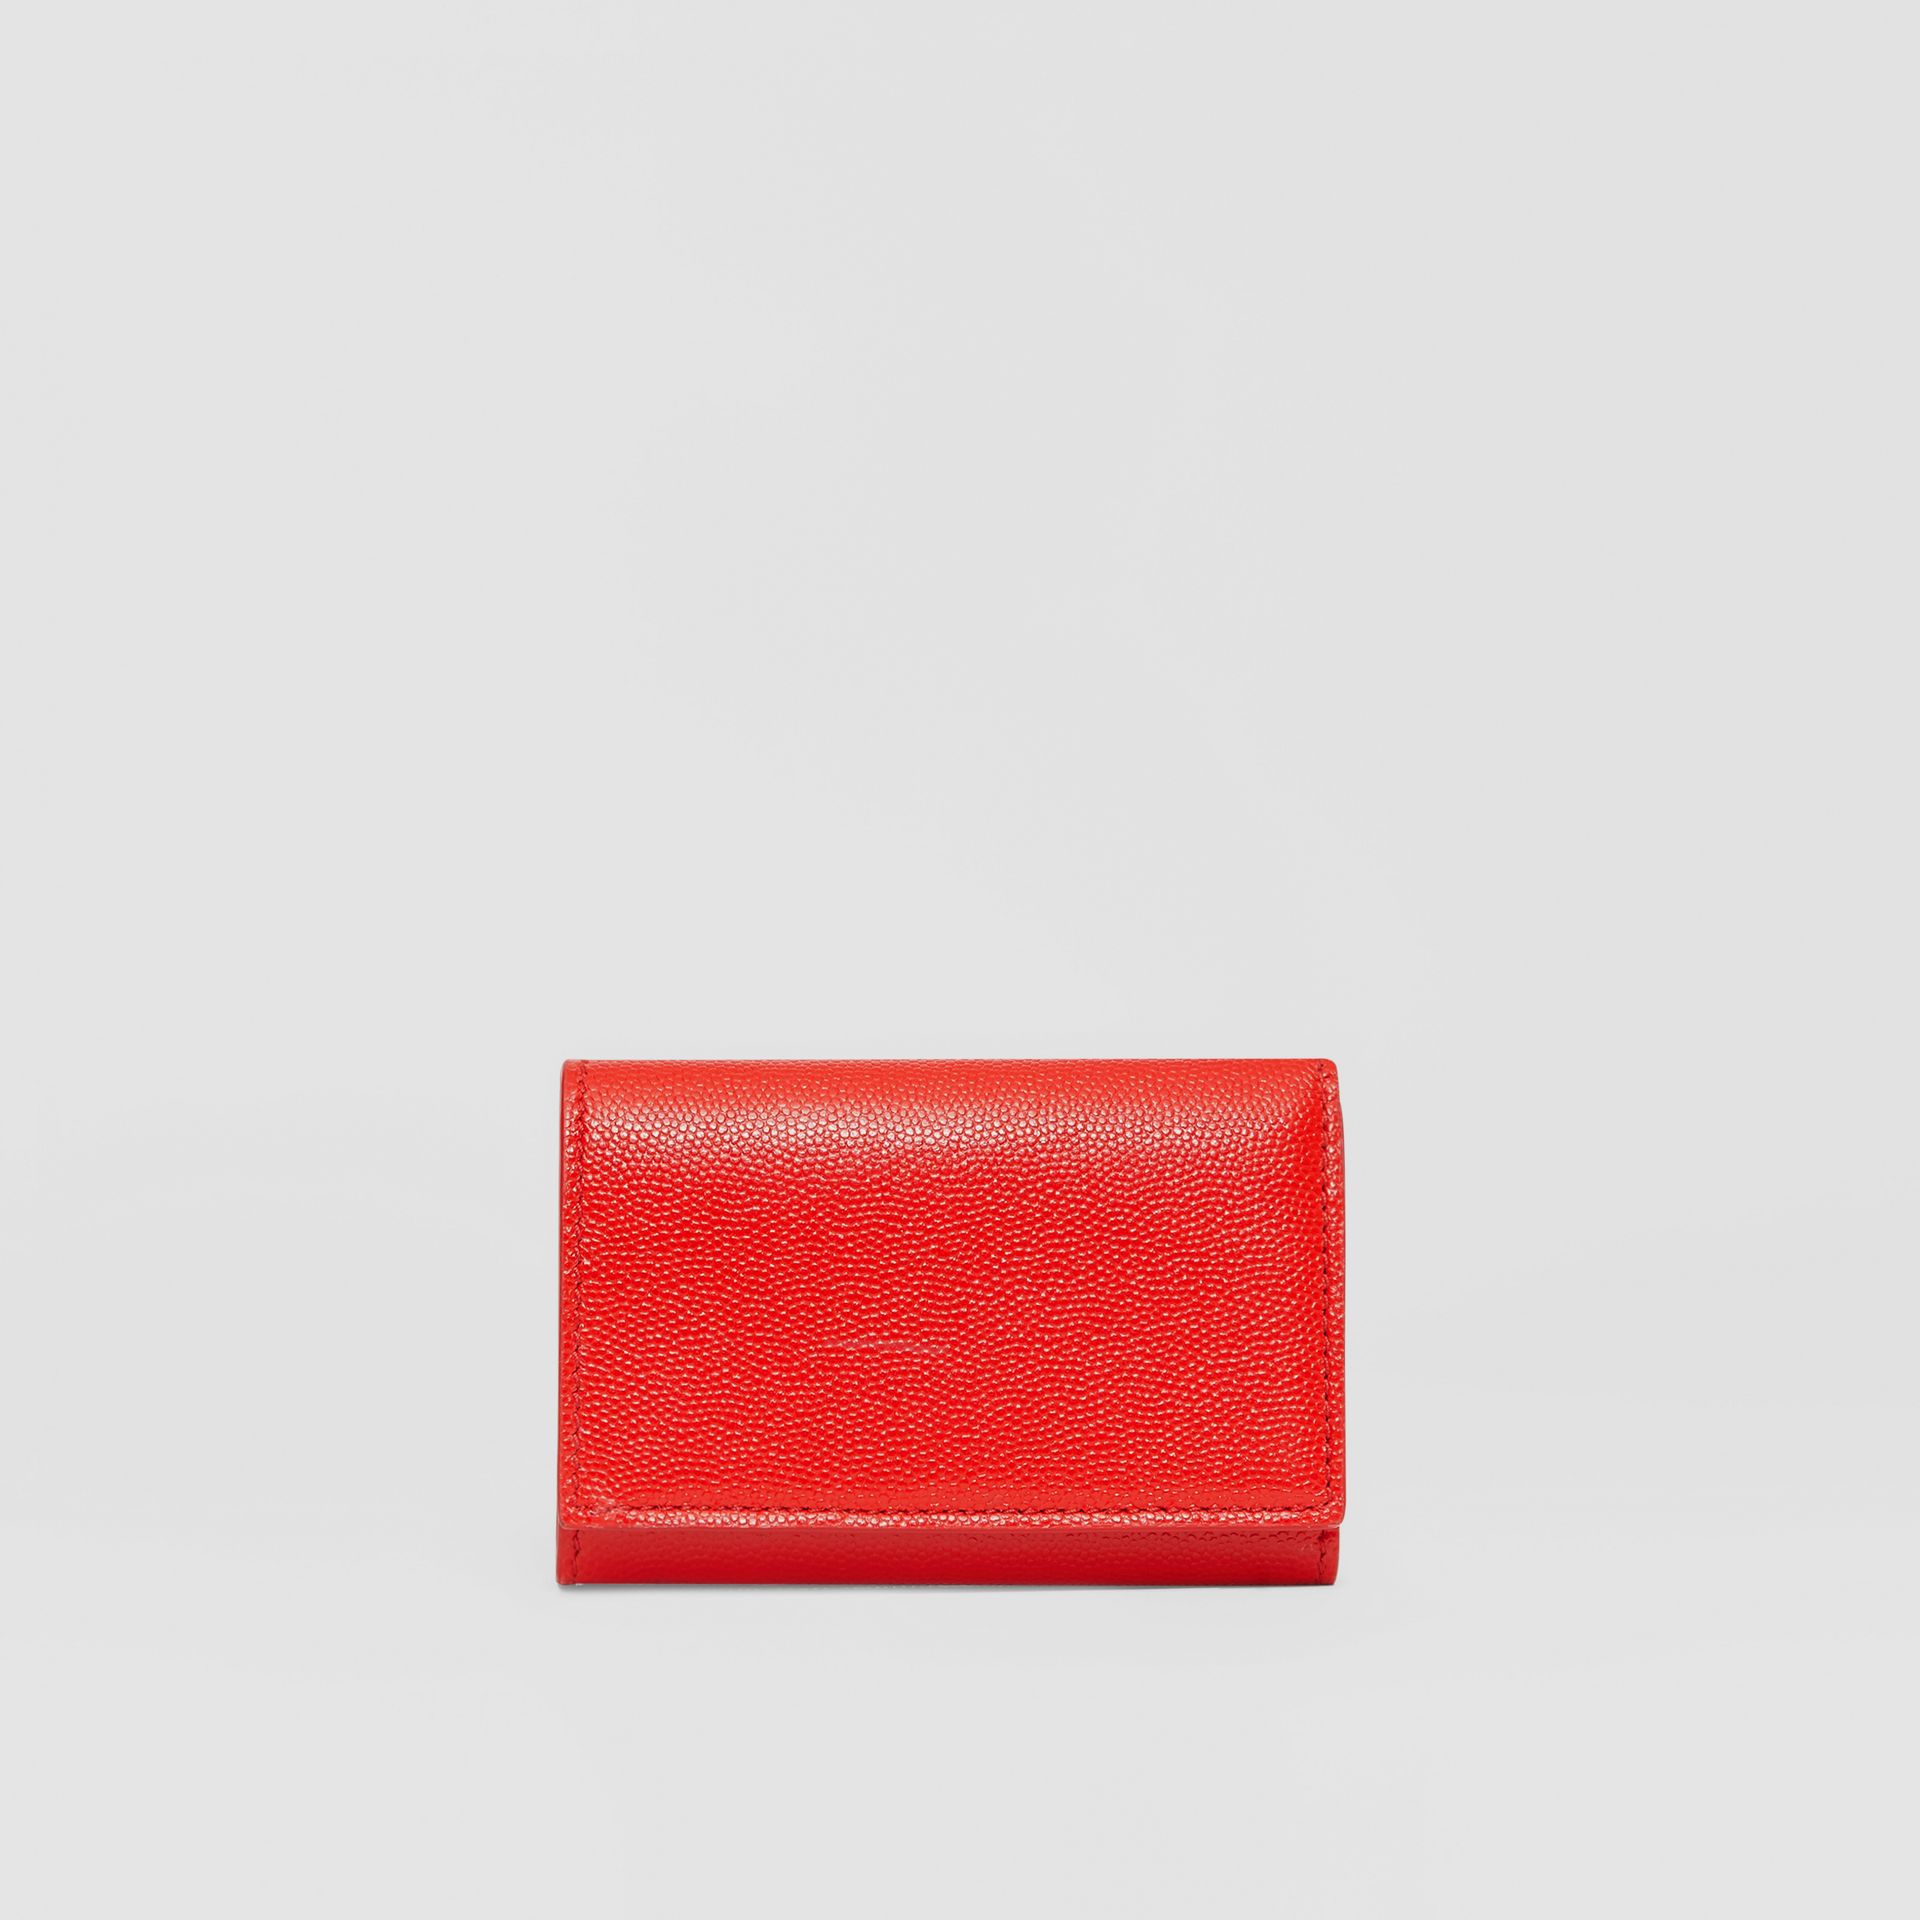 Small Grainy Leather Folding Wallet in Bright Red - Women | Burberry Singapore - gallery image 4